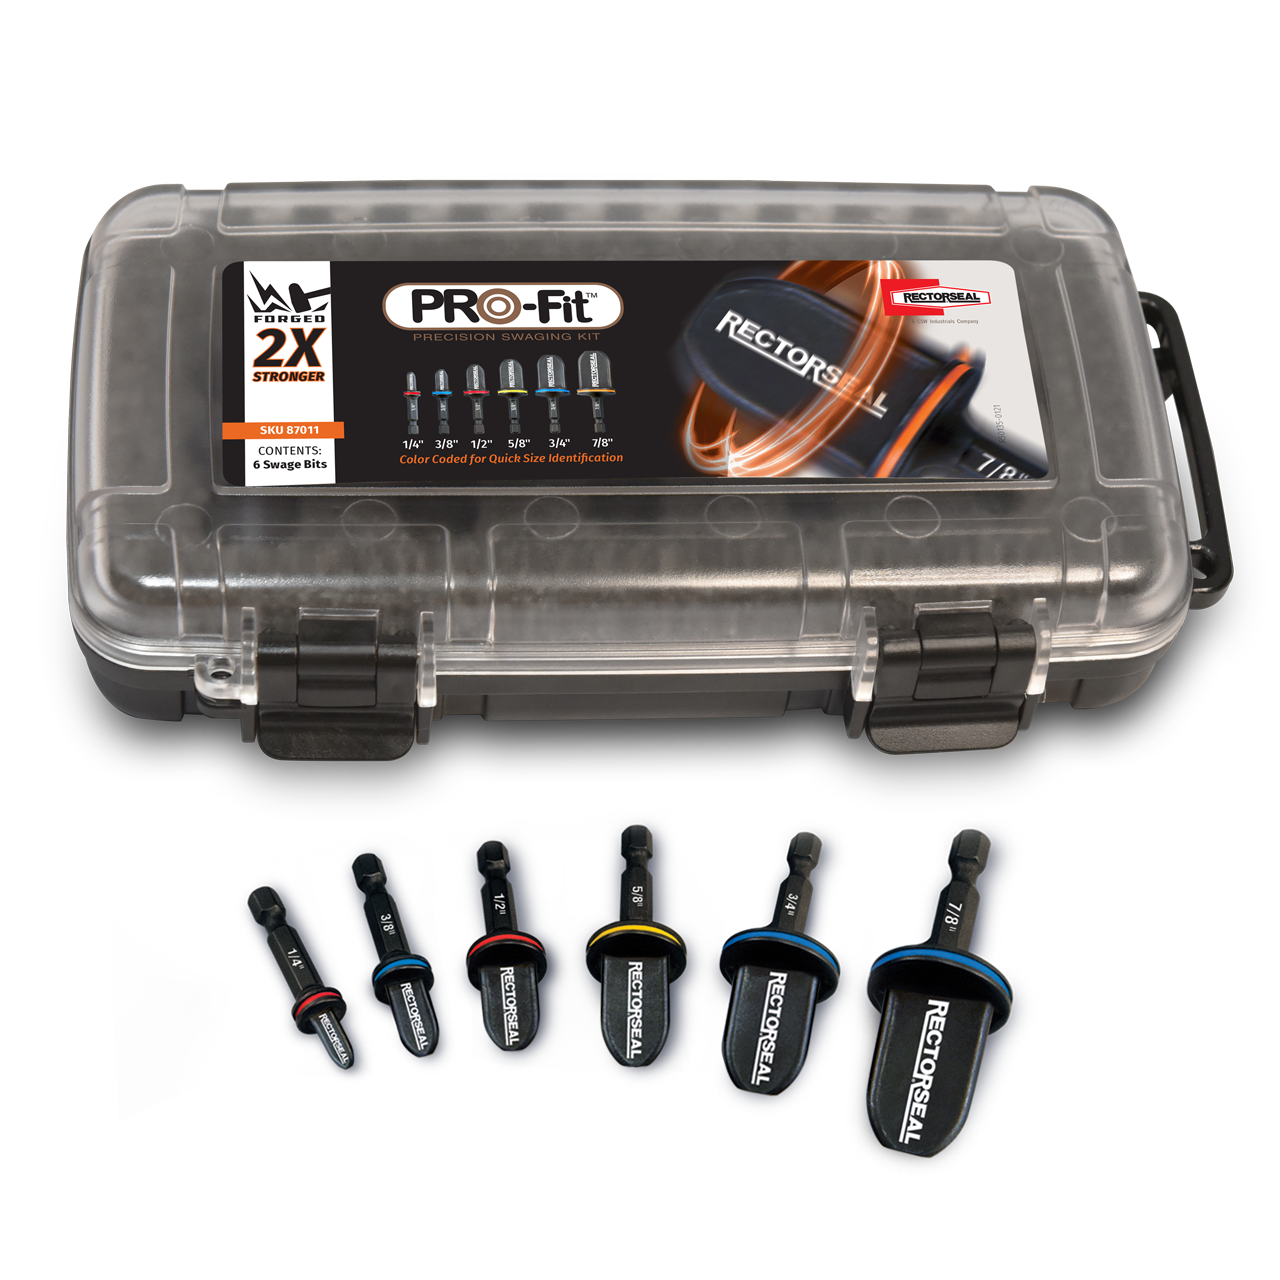 PRO-Fit Swaging Kit